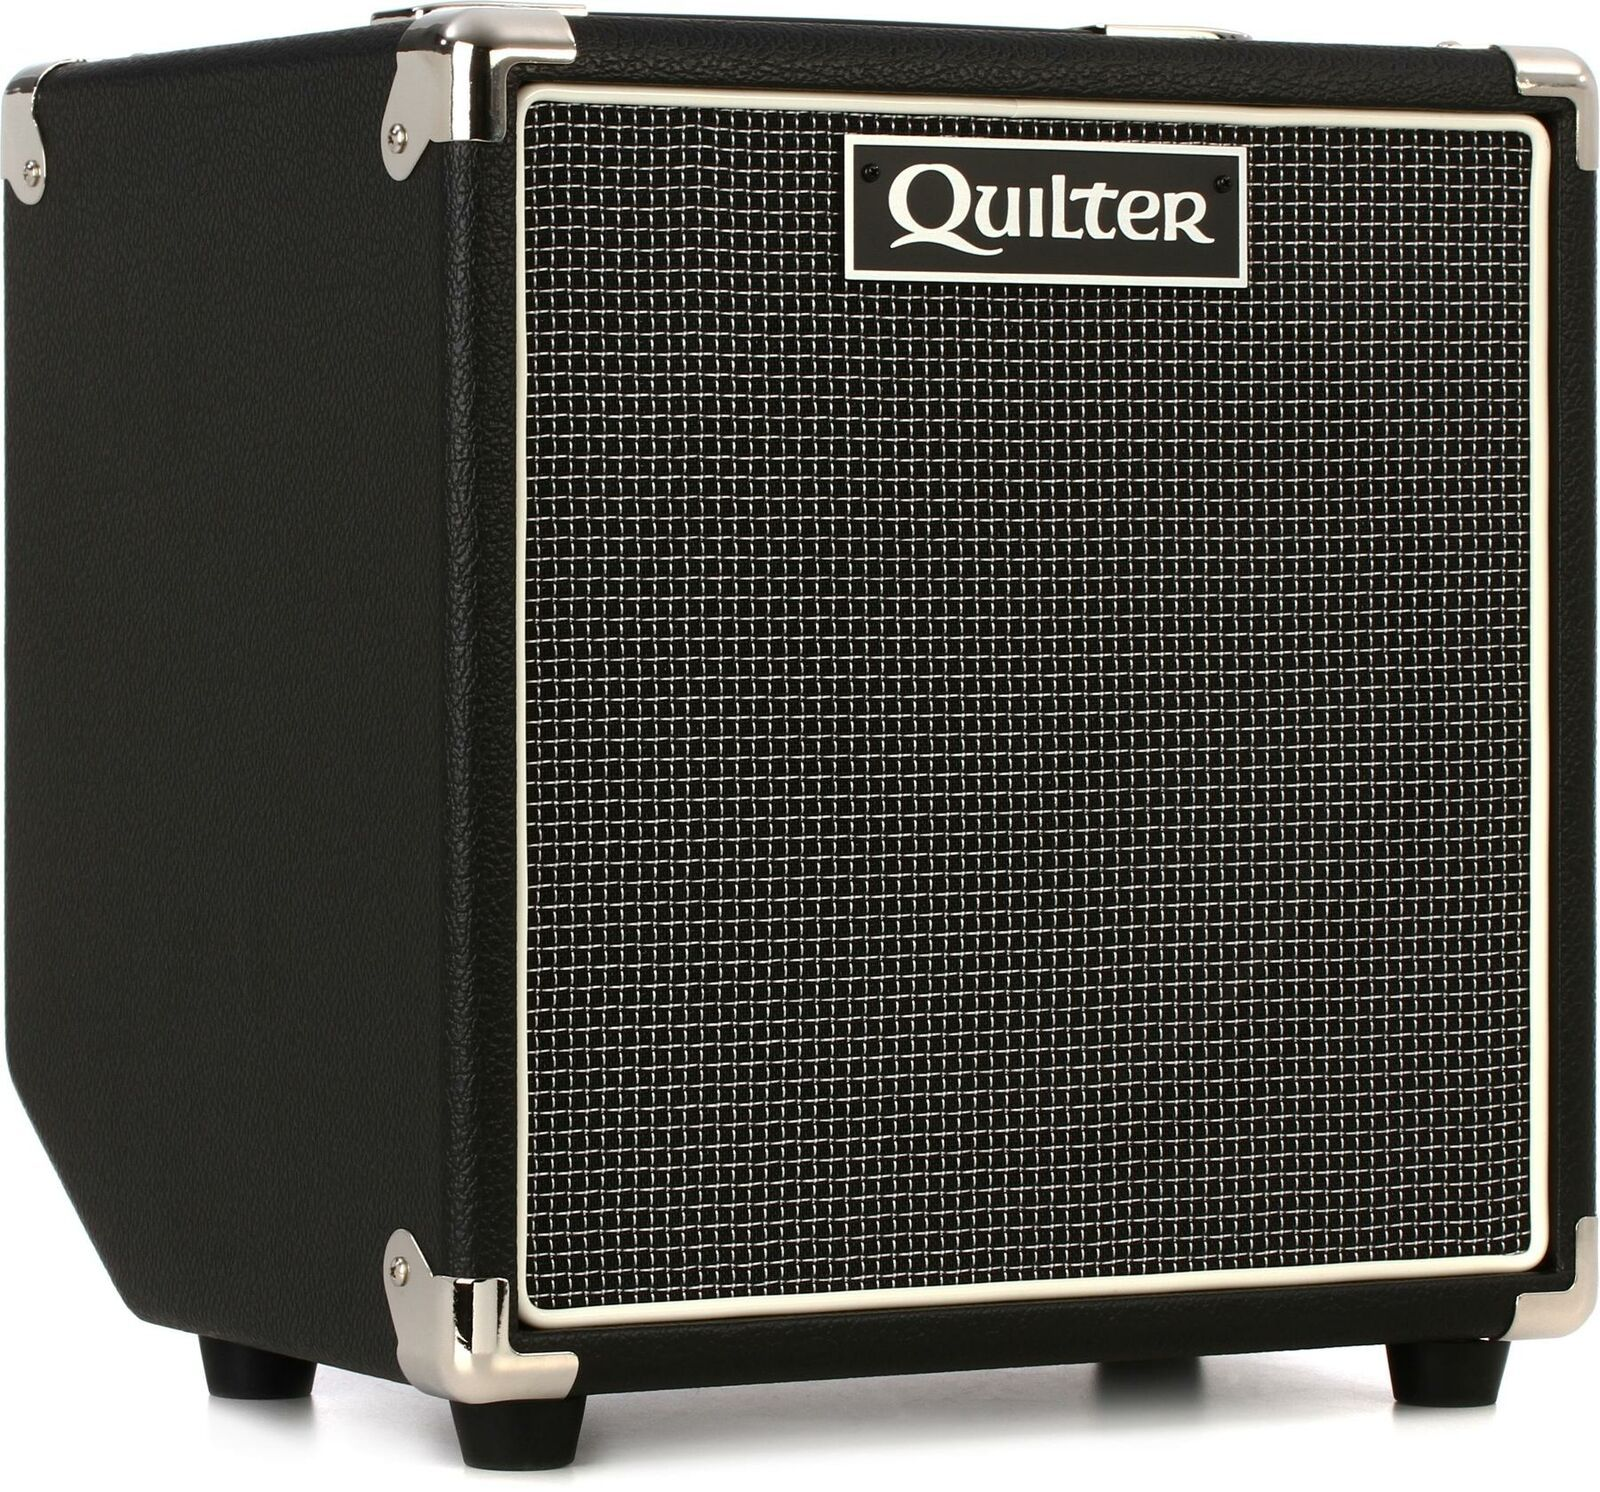 Click This Image To Show The Full Size Version Speaker Cab Speaker Plans Guitar Cabinet